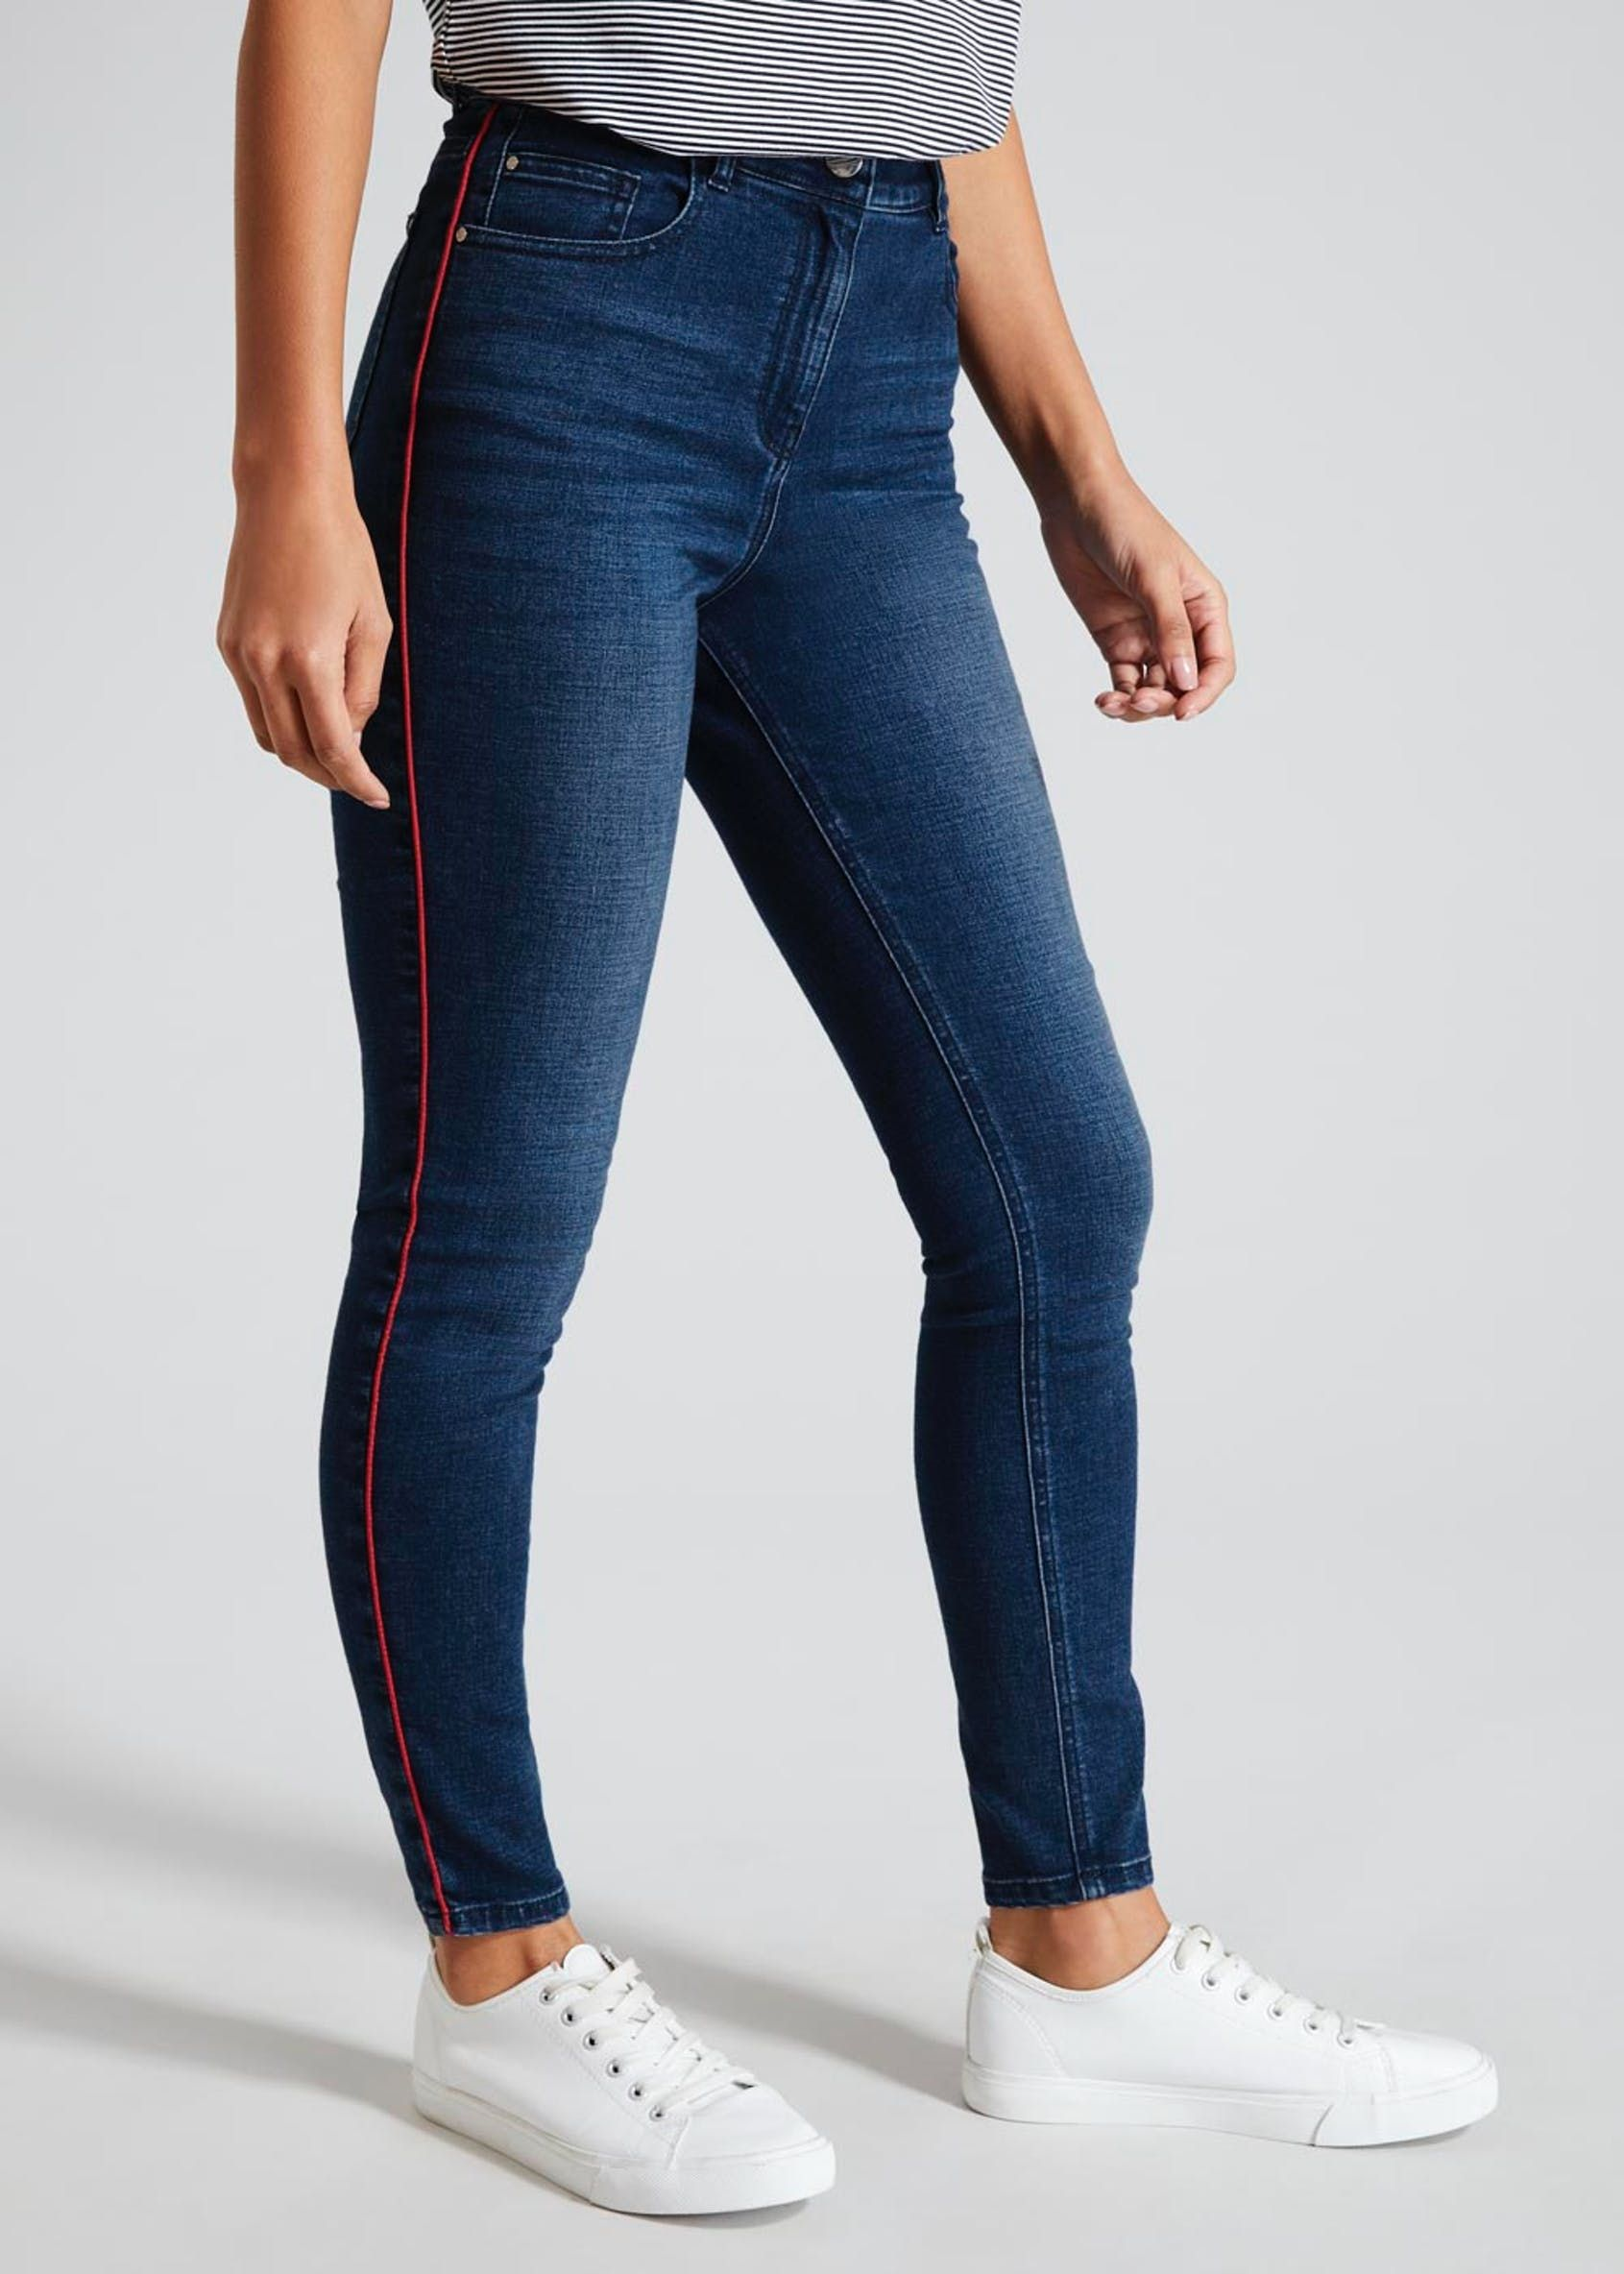 official supplier clearance sale various colors Jessie Side Stripe High Waisted Jeans   single stripe jean in 2019 ...